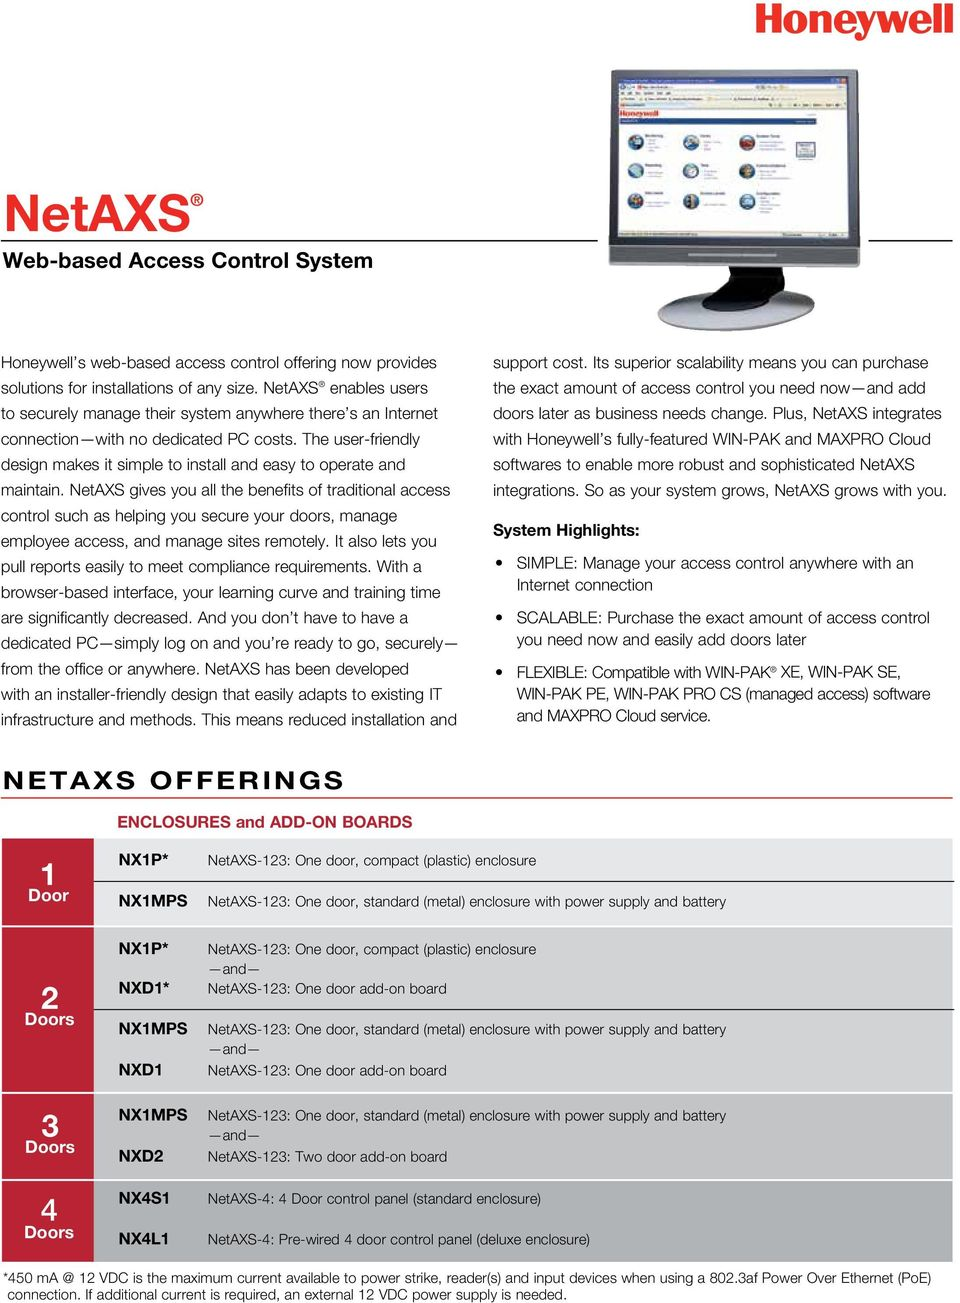 NetAXS gives you all the benefits of traditional access control such as helping you secure your dos, manage employee access, and manage sites remotely.